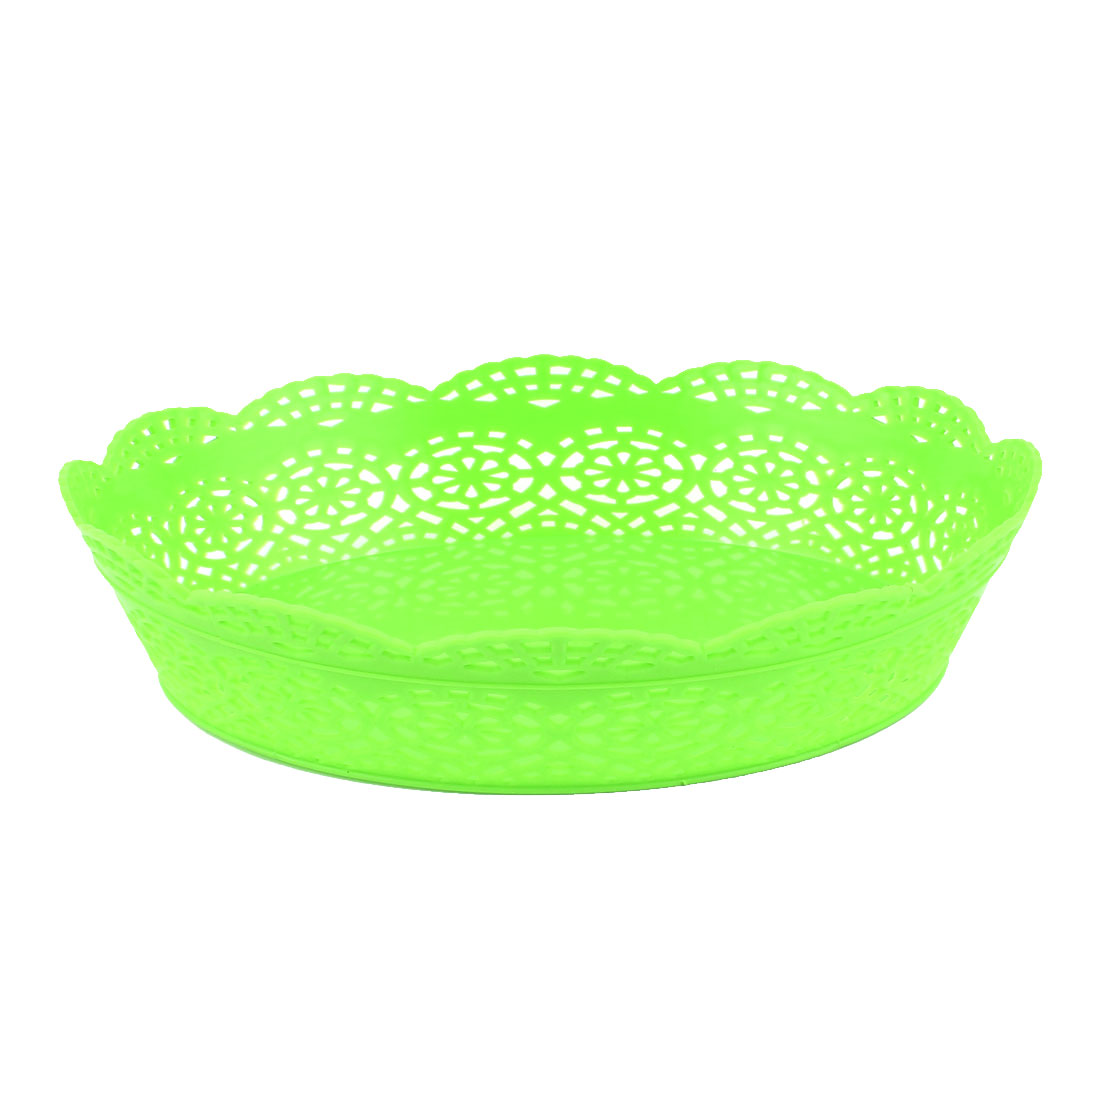 Green Plastic Hollow Out Design Fruit Vegetable Storage Holder Basket Container Organizer